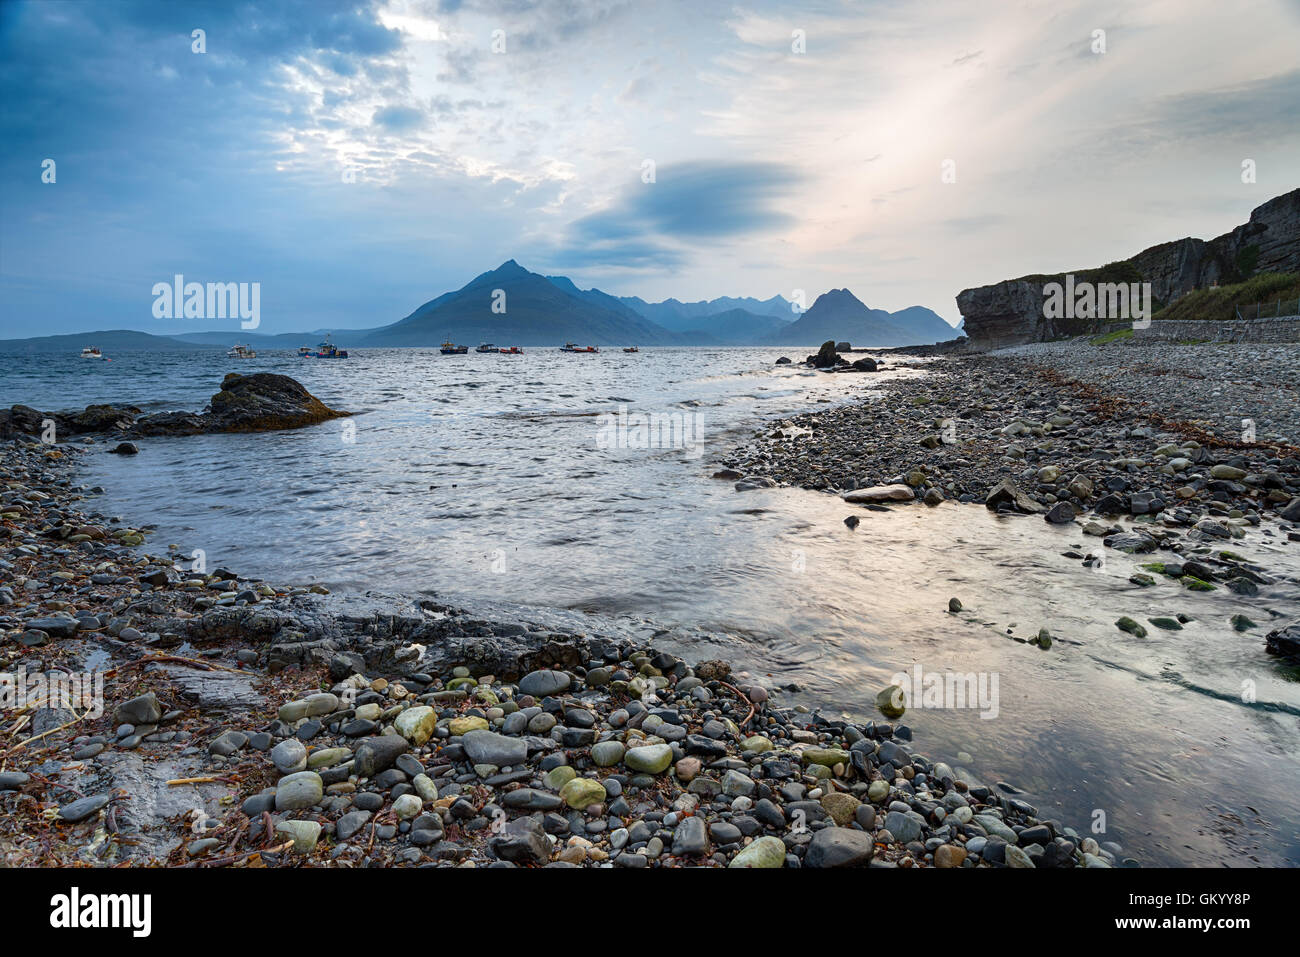 Storm clouds building over the beach at Elgol on the Isle of Skye in Scotland - Stock Image